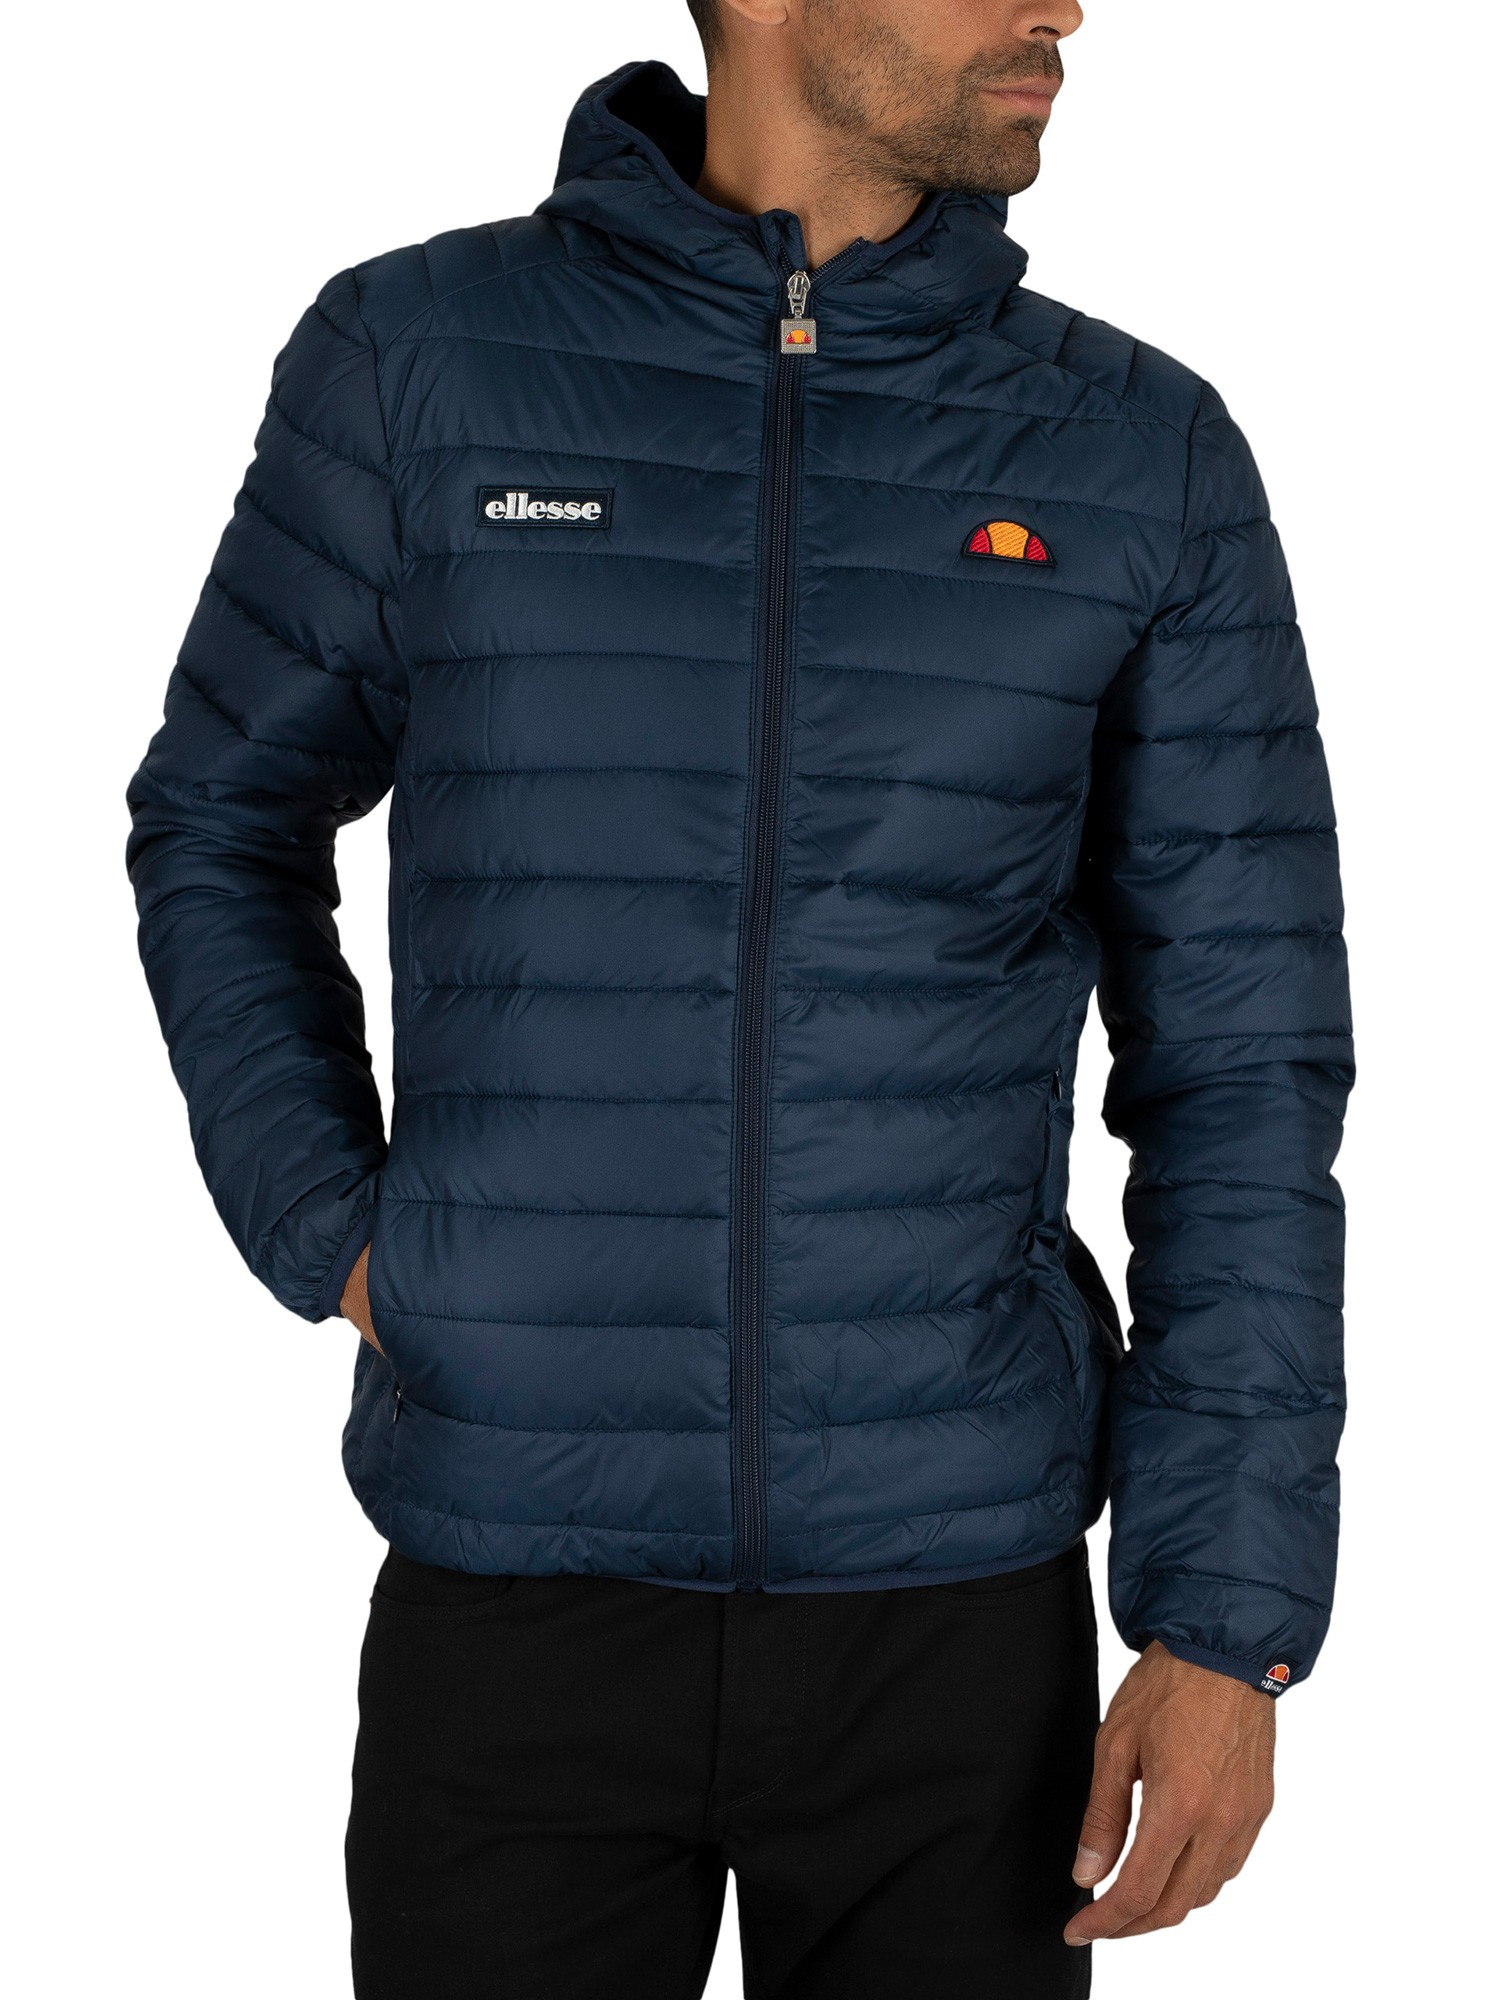 ellesse herren lombardei gepolsterte jacke blau ebay. Black Bedroom Furniture Sets. Home Design Ideas